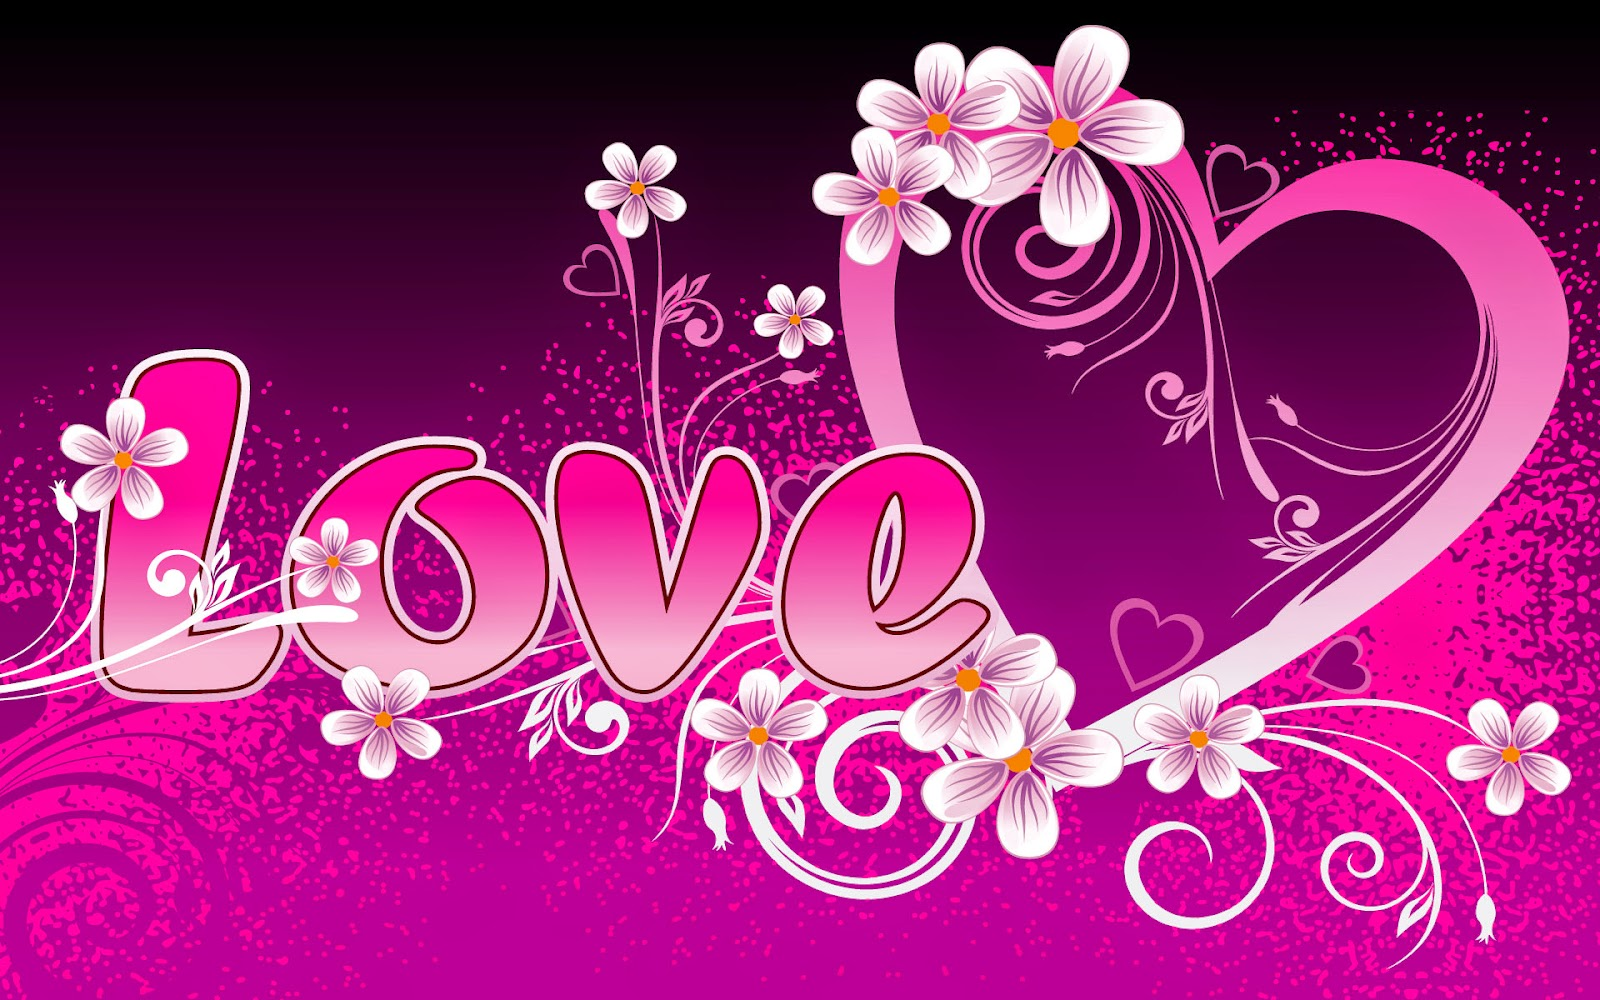 Beautiful Love Wallpaper Pictures : HD WALLPAPER: most beautiful love wallpapers(High Definition) High Quality Desktop Wallpapers